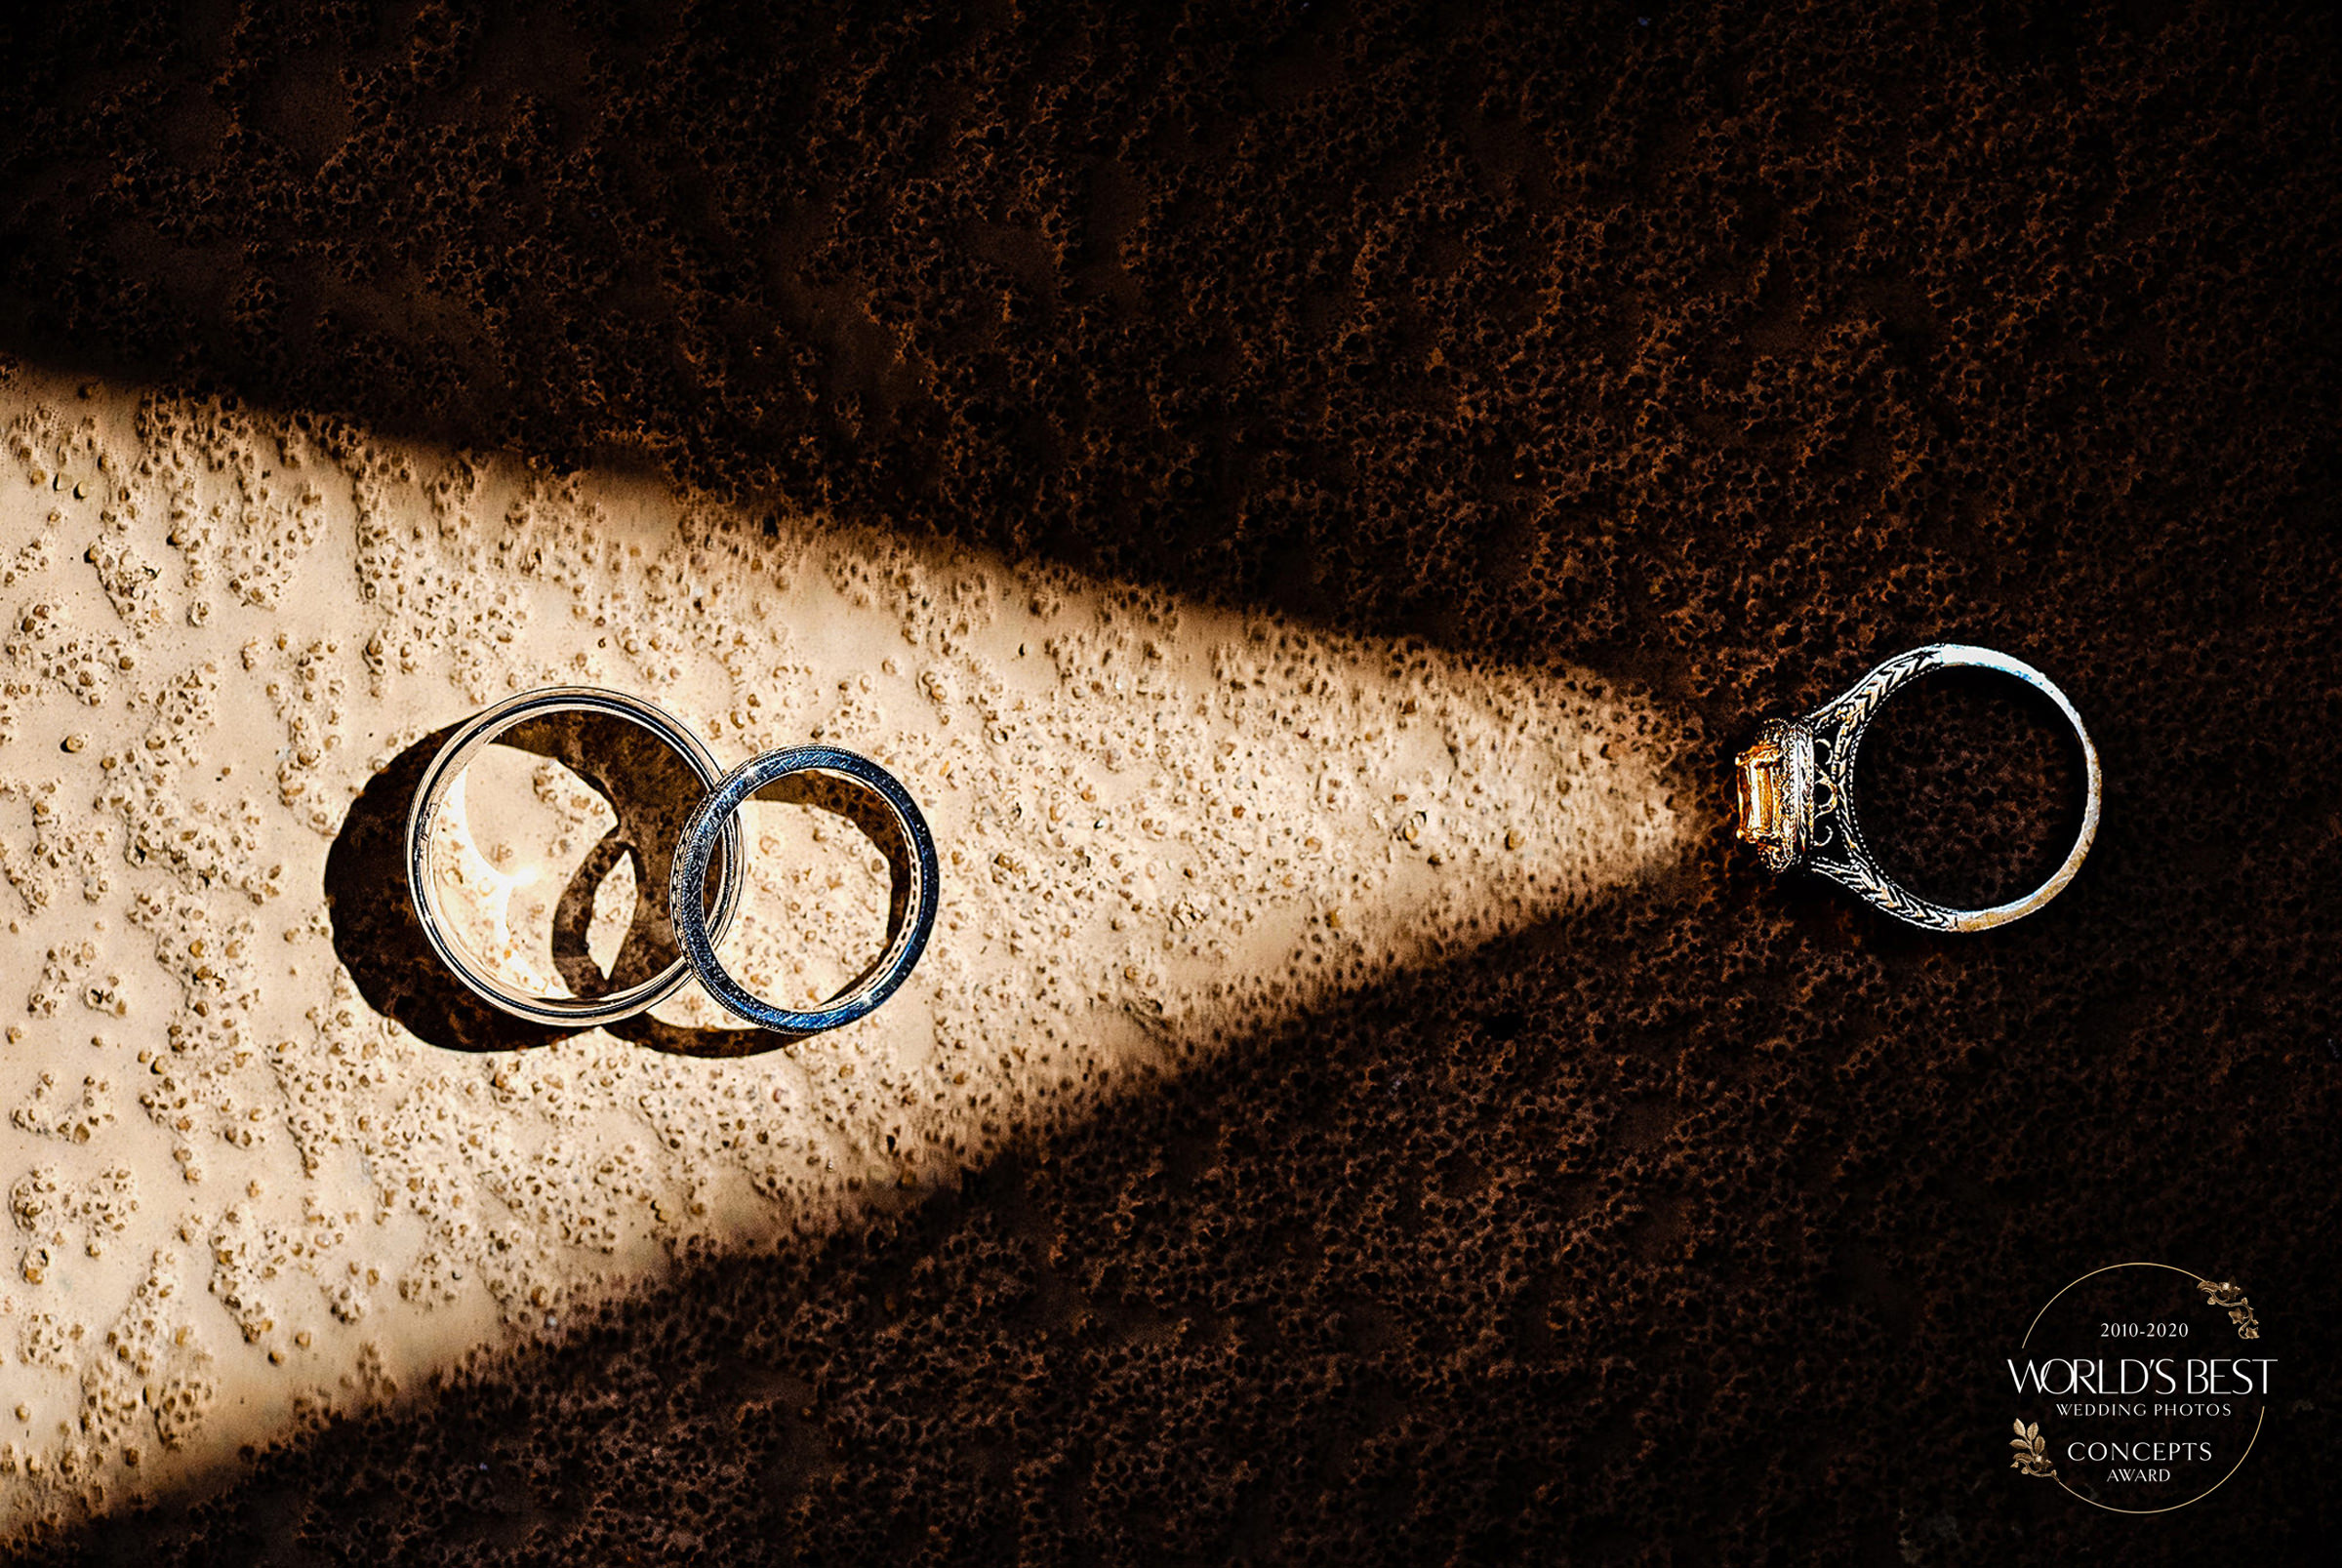 Out of the box ring shot by Jeff Tisman